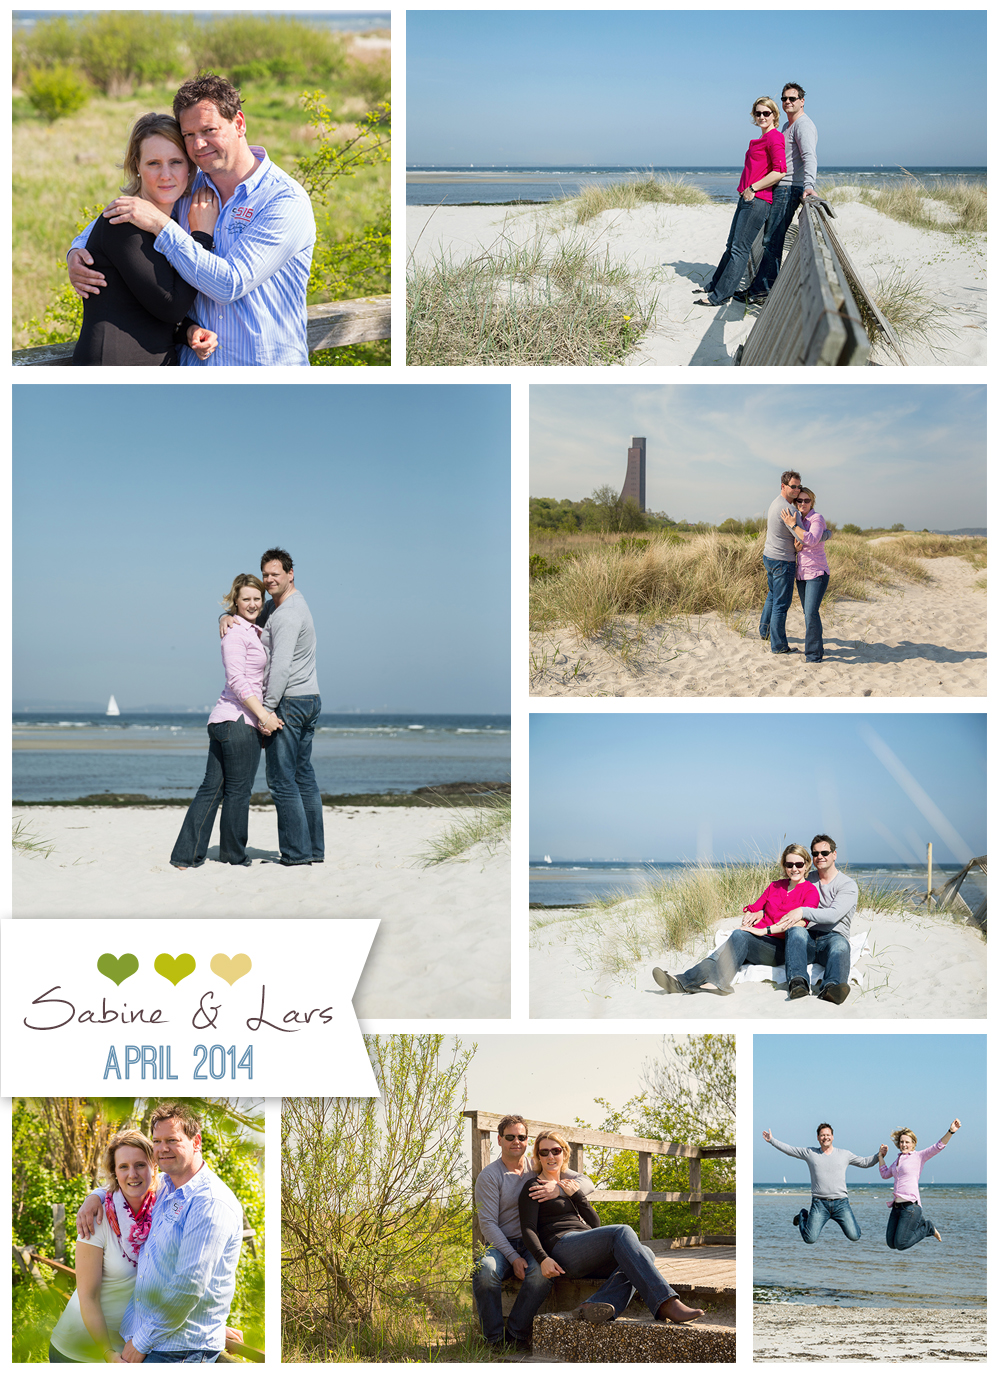 Paar-Shooting am Strand, Laboe